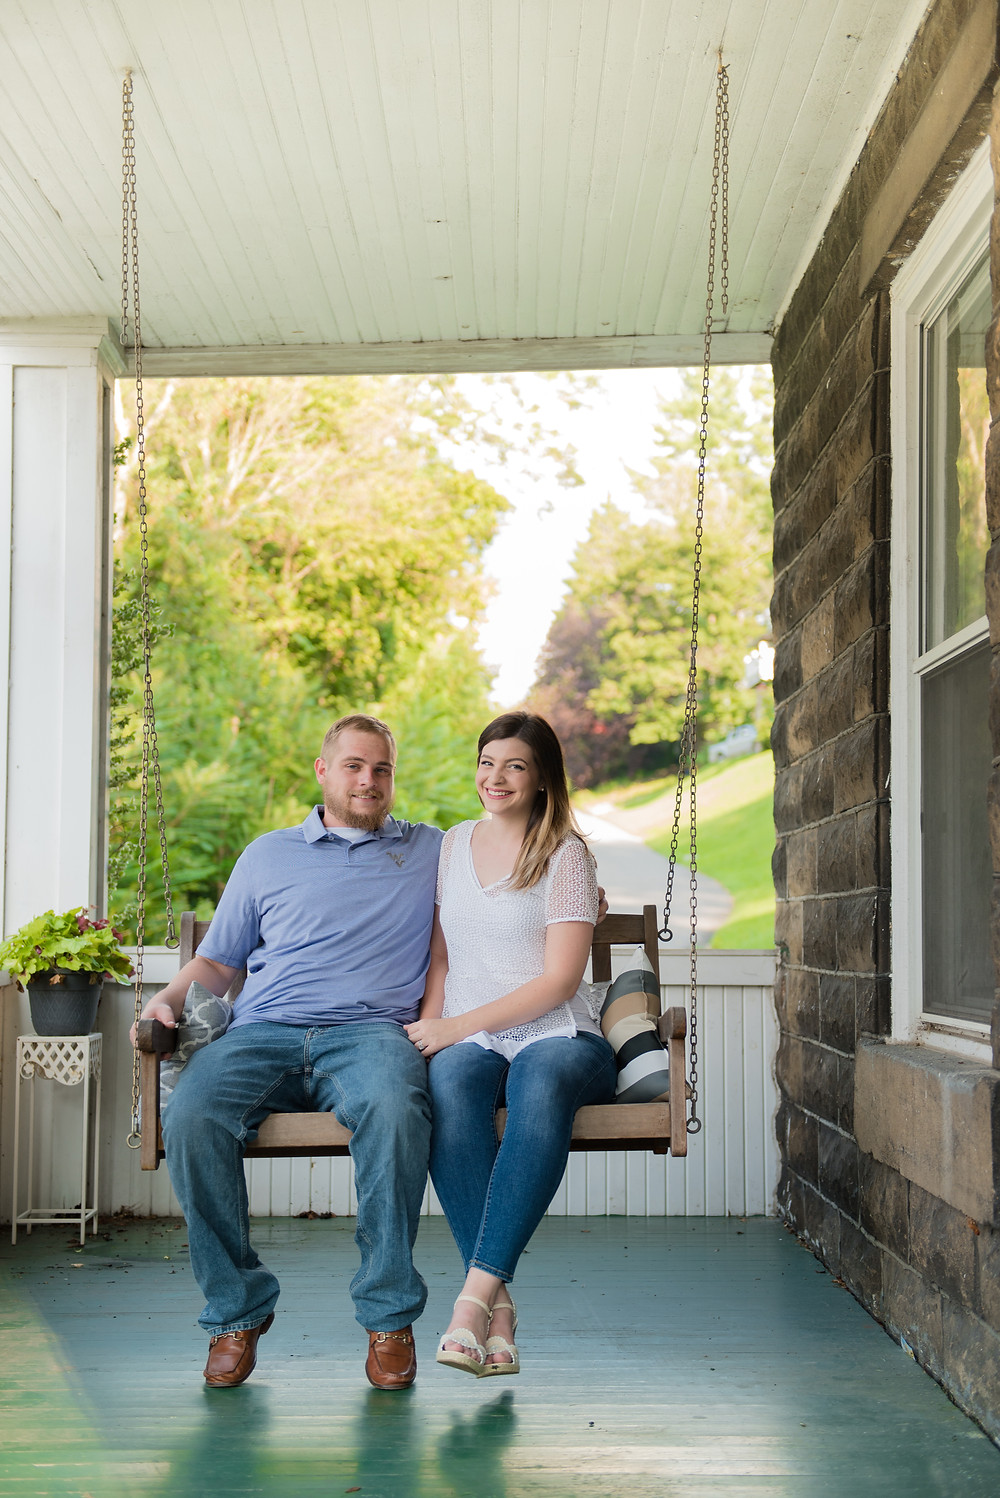 Couple sitting on their porch swing of their new home. They are wearing coordinating colors of blue and white.